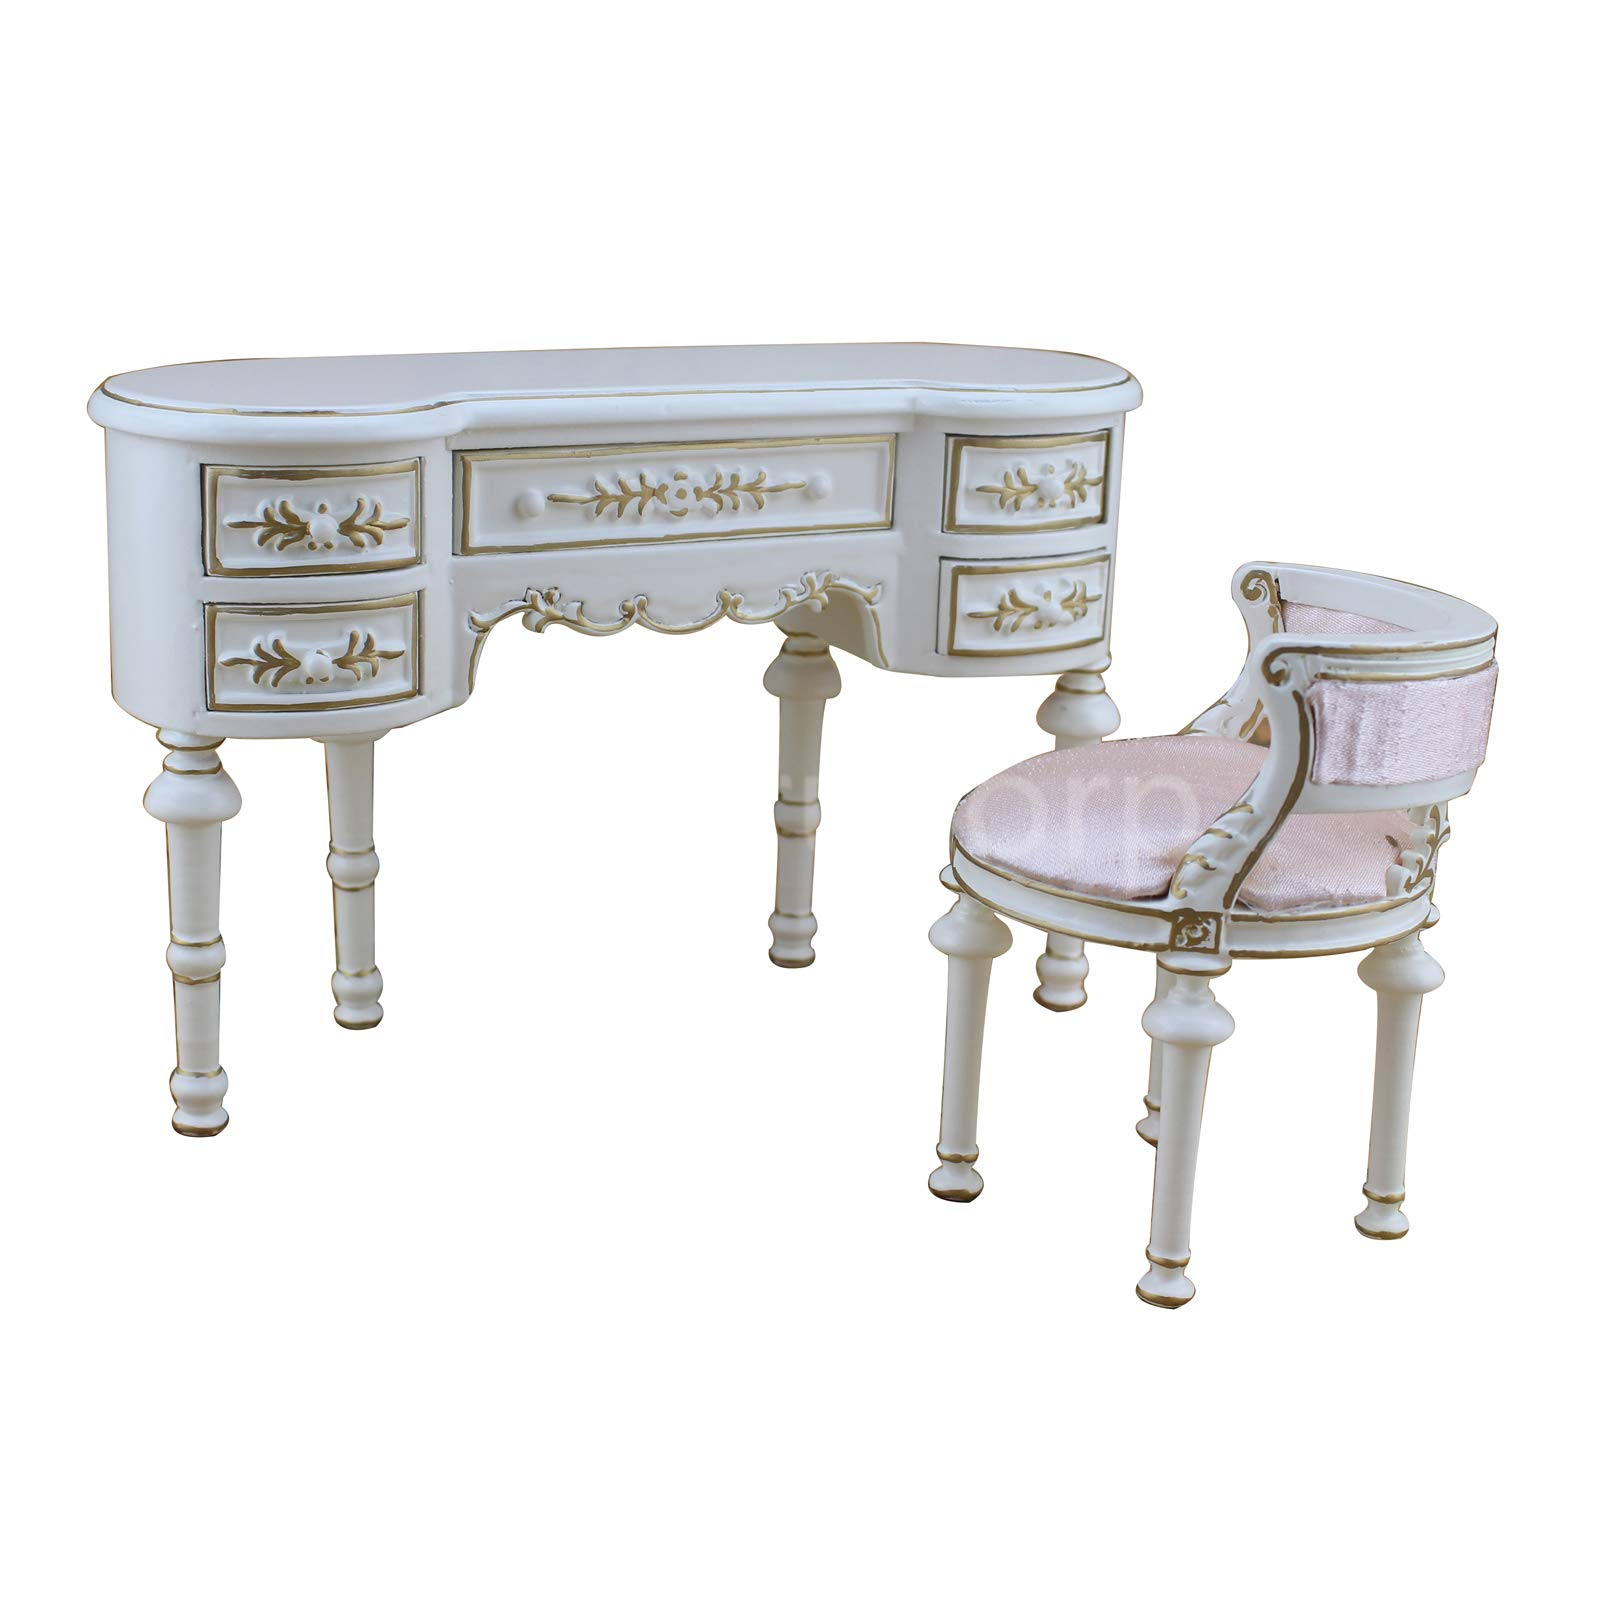 Meirucorp Fine BJD 1:6 Doll Miniature Furniture Exquisite White Classical Desk and Chair Set